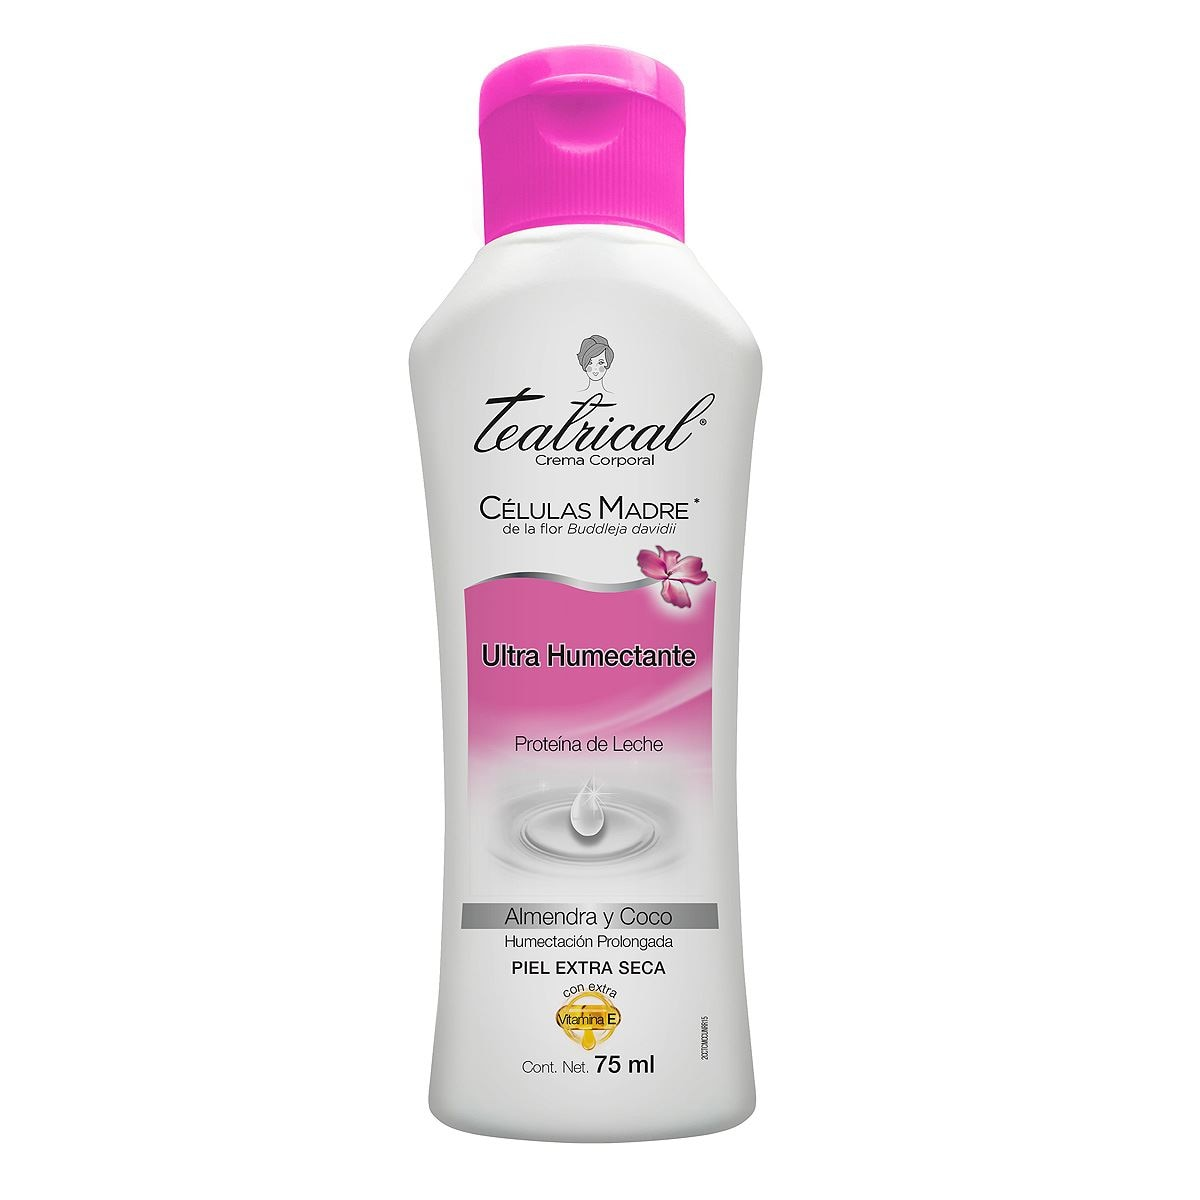 Teatrical crema corporal ultra humectante 75 ml  - Sanborns